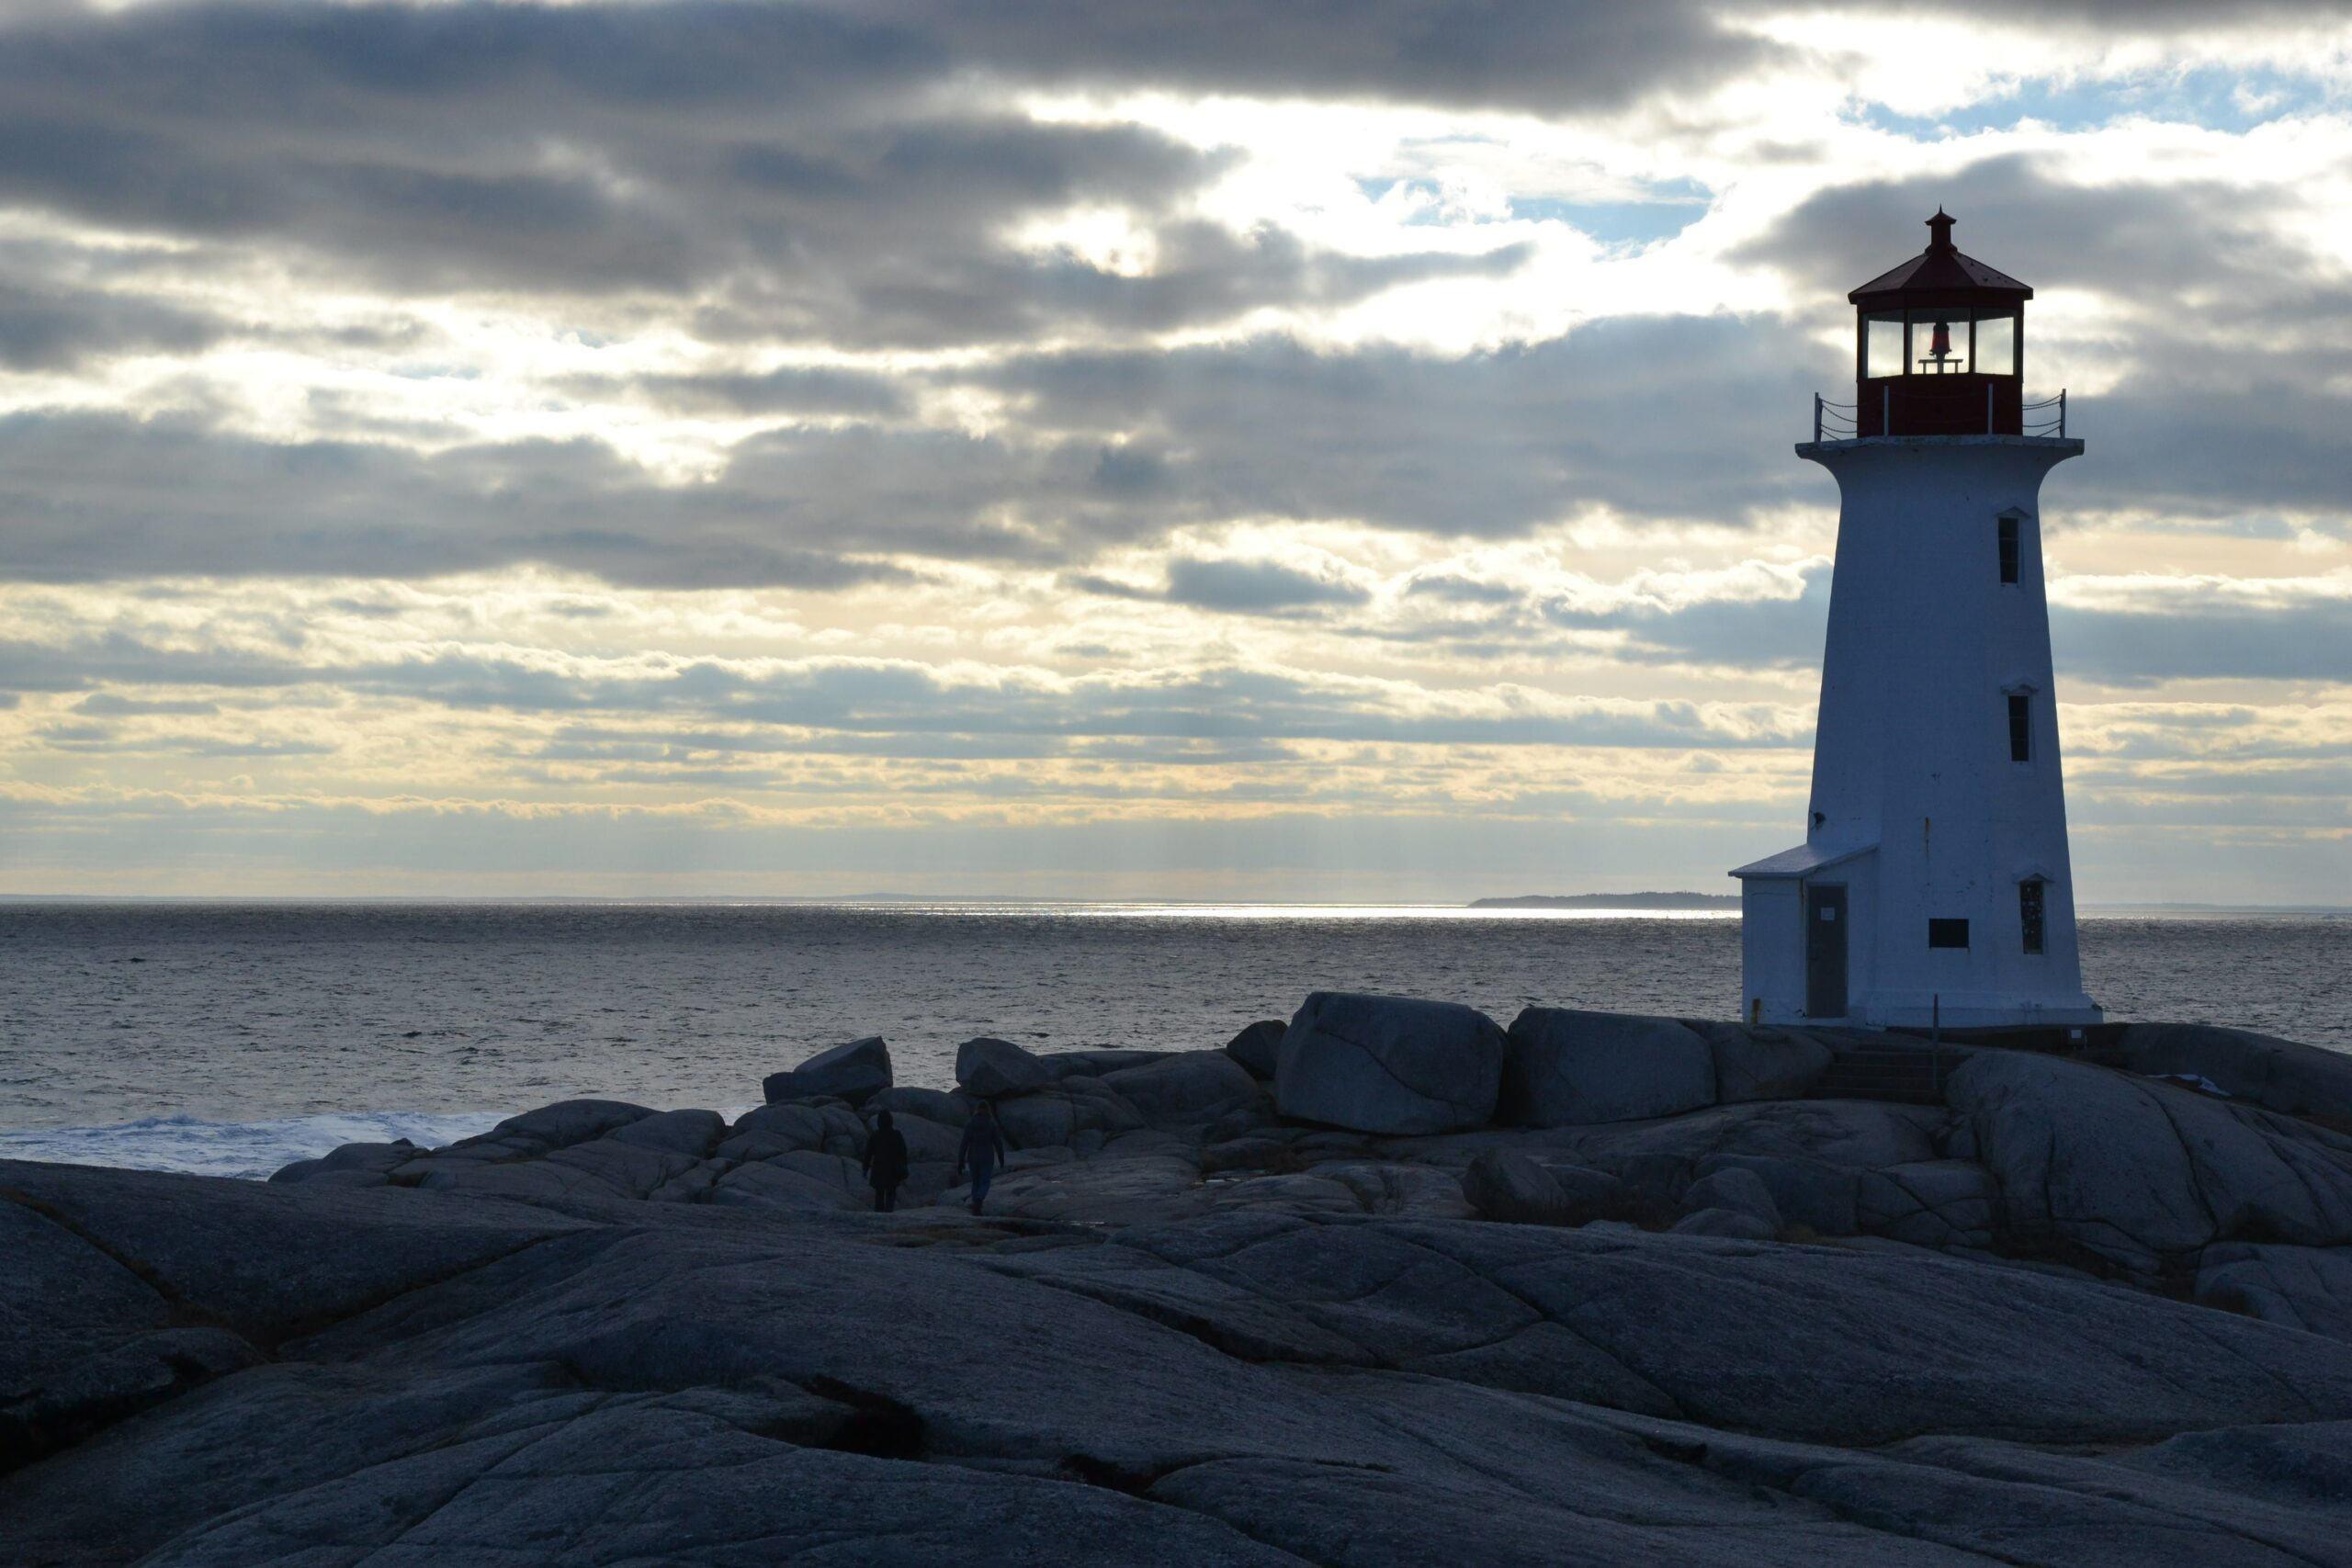 Lighthouse in the evening.